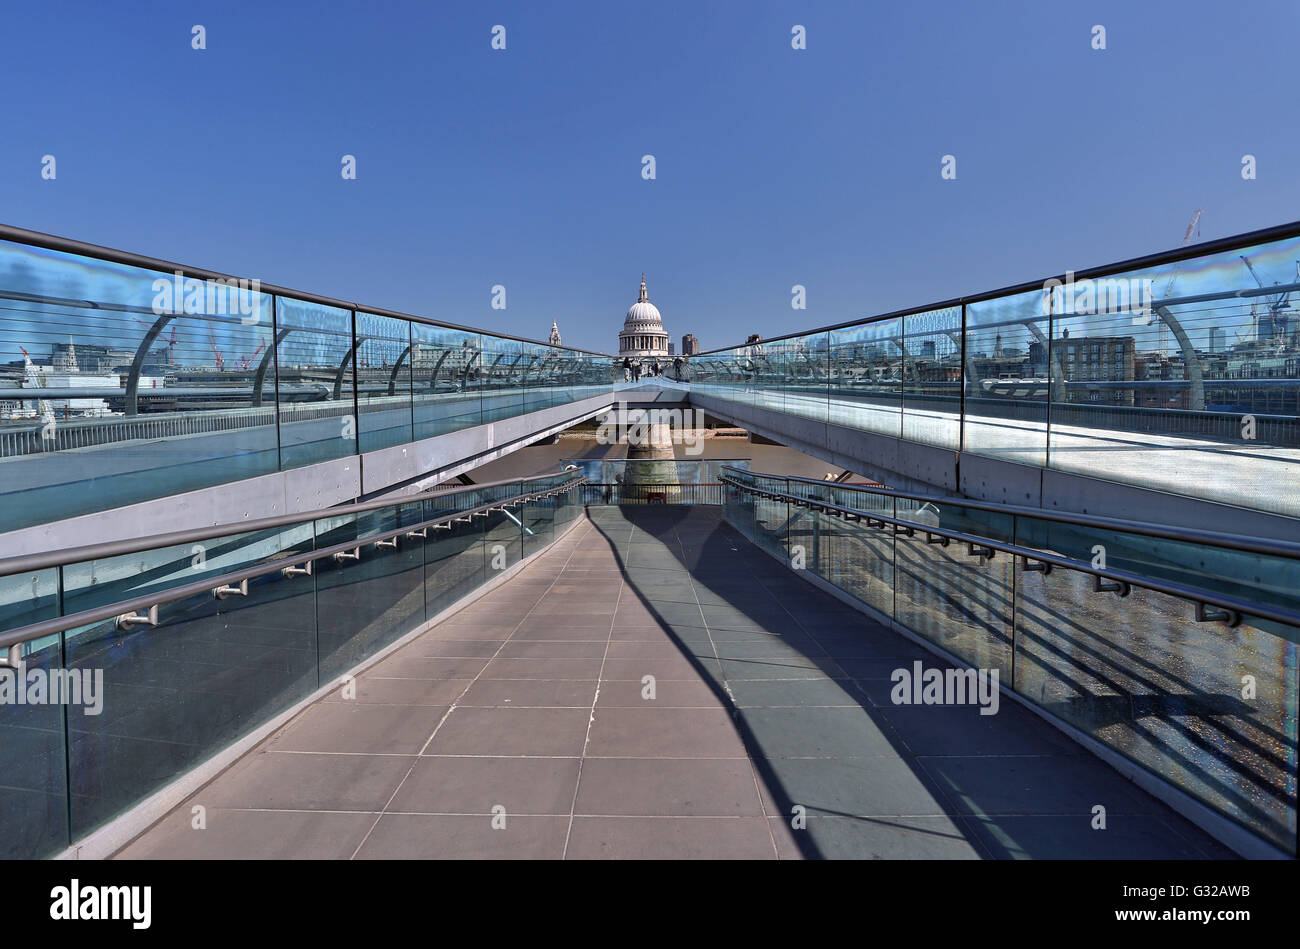 St Paul's Cathedral, London seen from Millennium Bridge - Stock Image